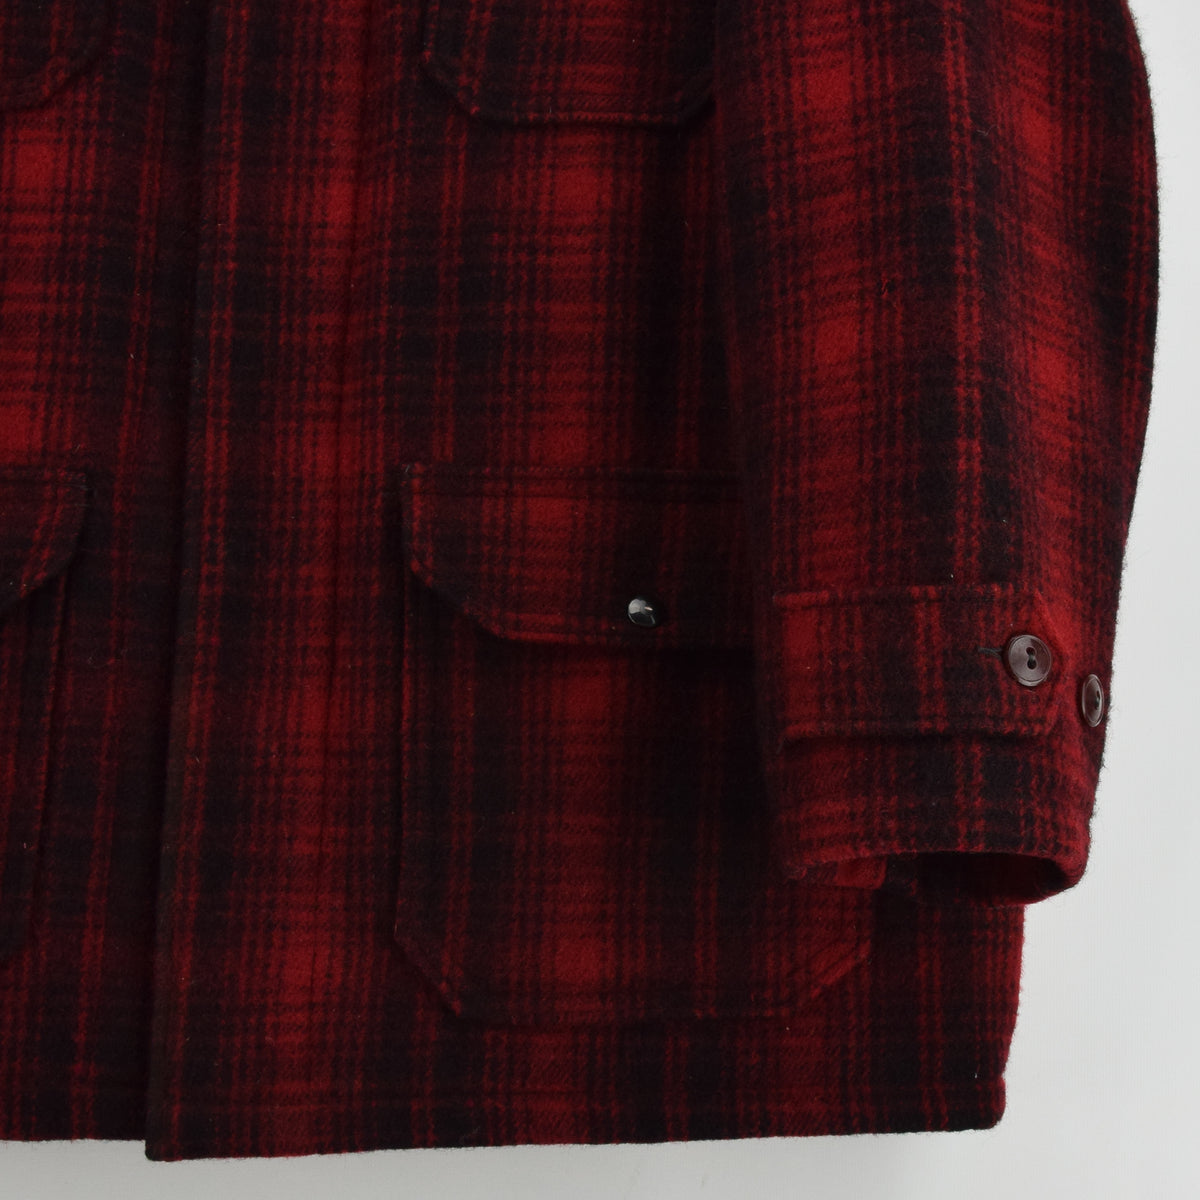 Vintage 70s Woolrich Buffalo Plaid Mackinaw Hunting Cruiser Jacket Made in USA L front hem